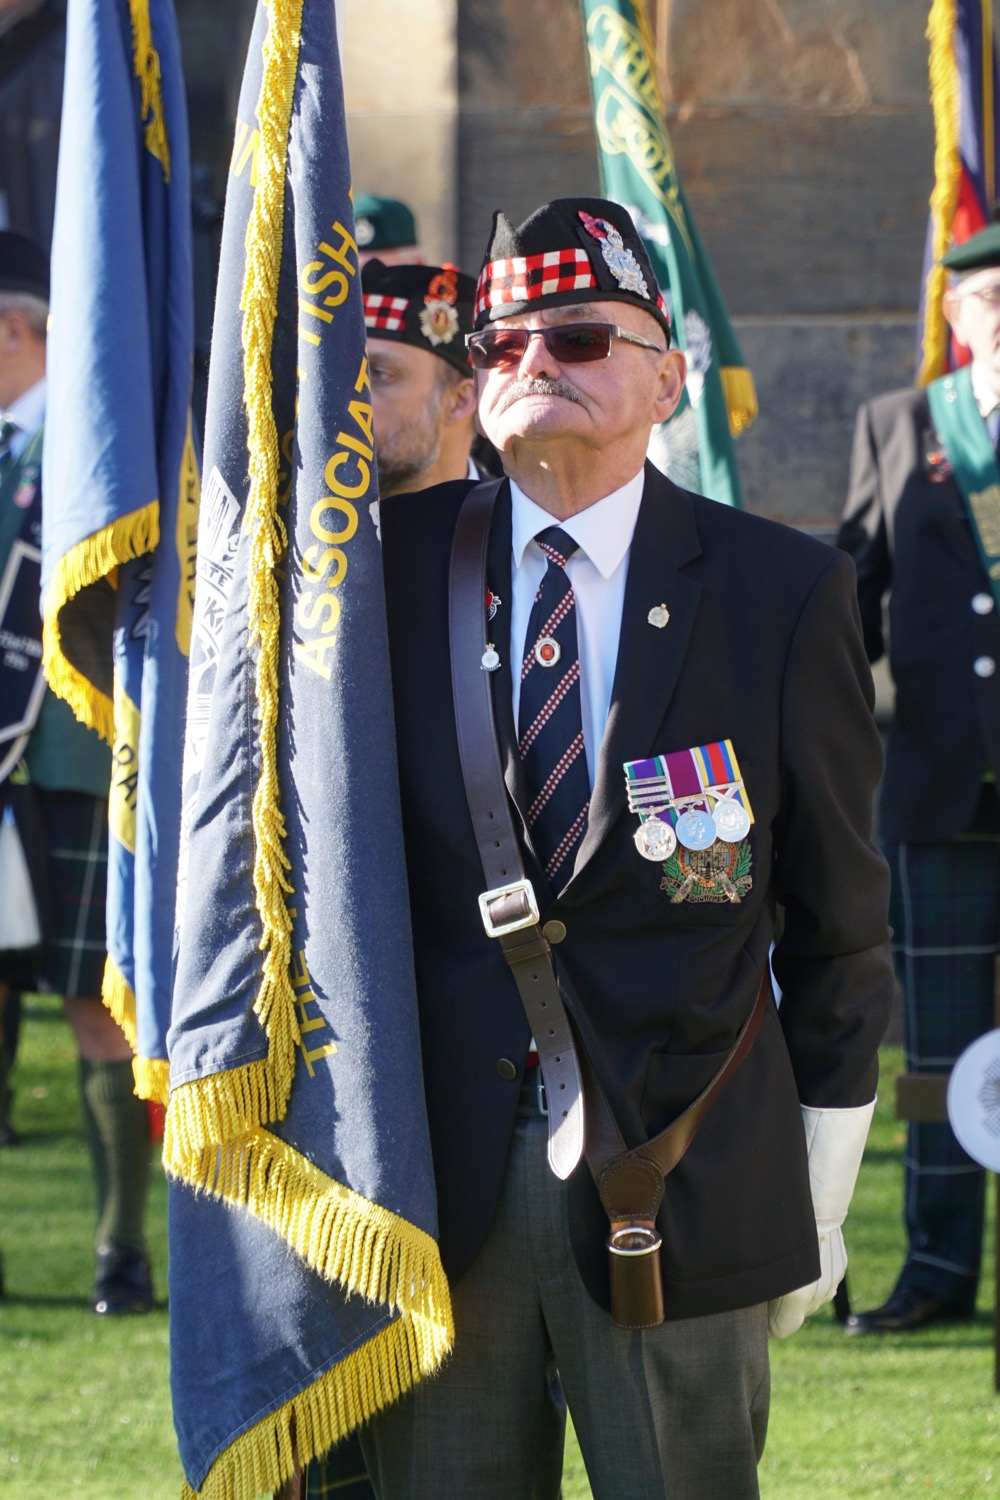 A standard bearer at the Garden of Remembrance opening ceremony 2018